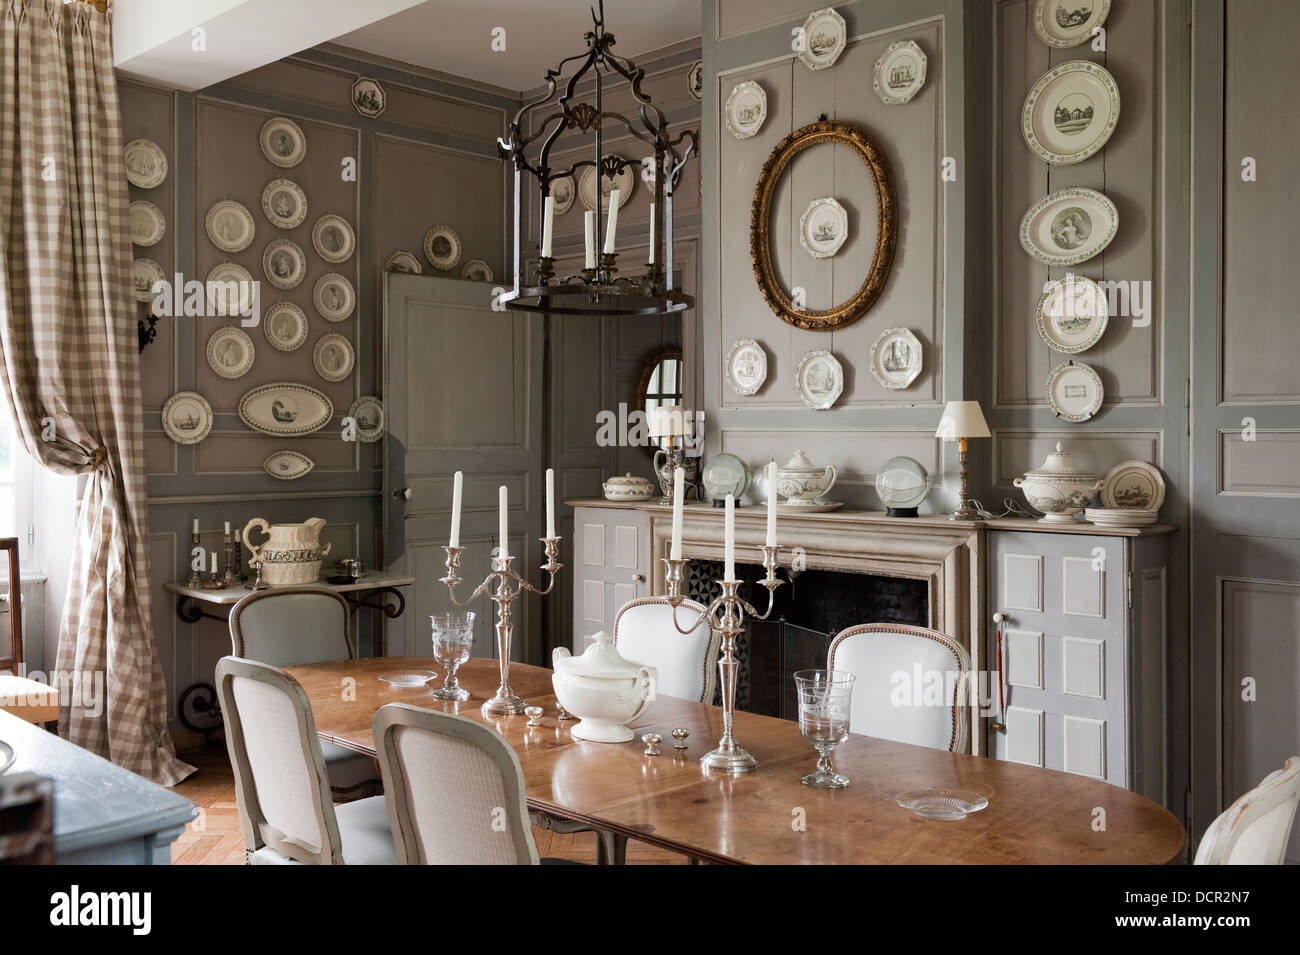 French Antique Chairs And Table In Elegant Dining Room With Wood Wall  Panelling And Decorative Plates